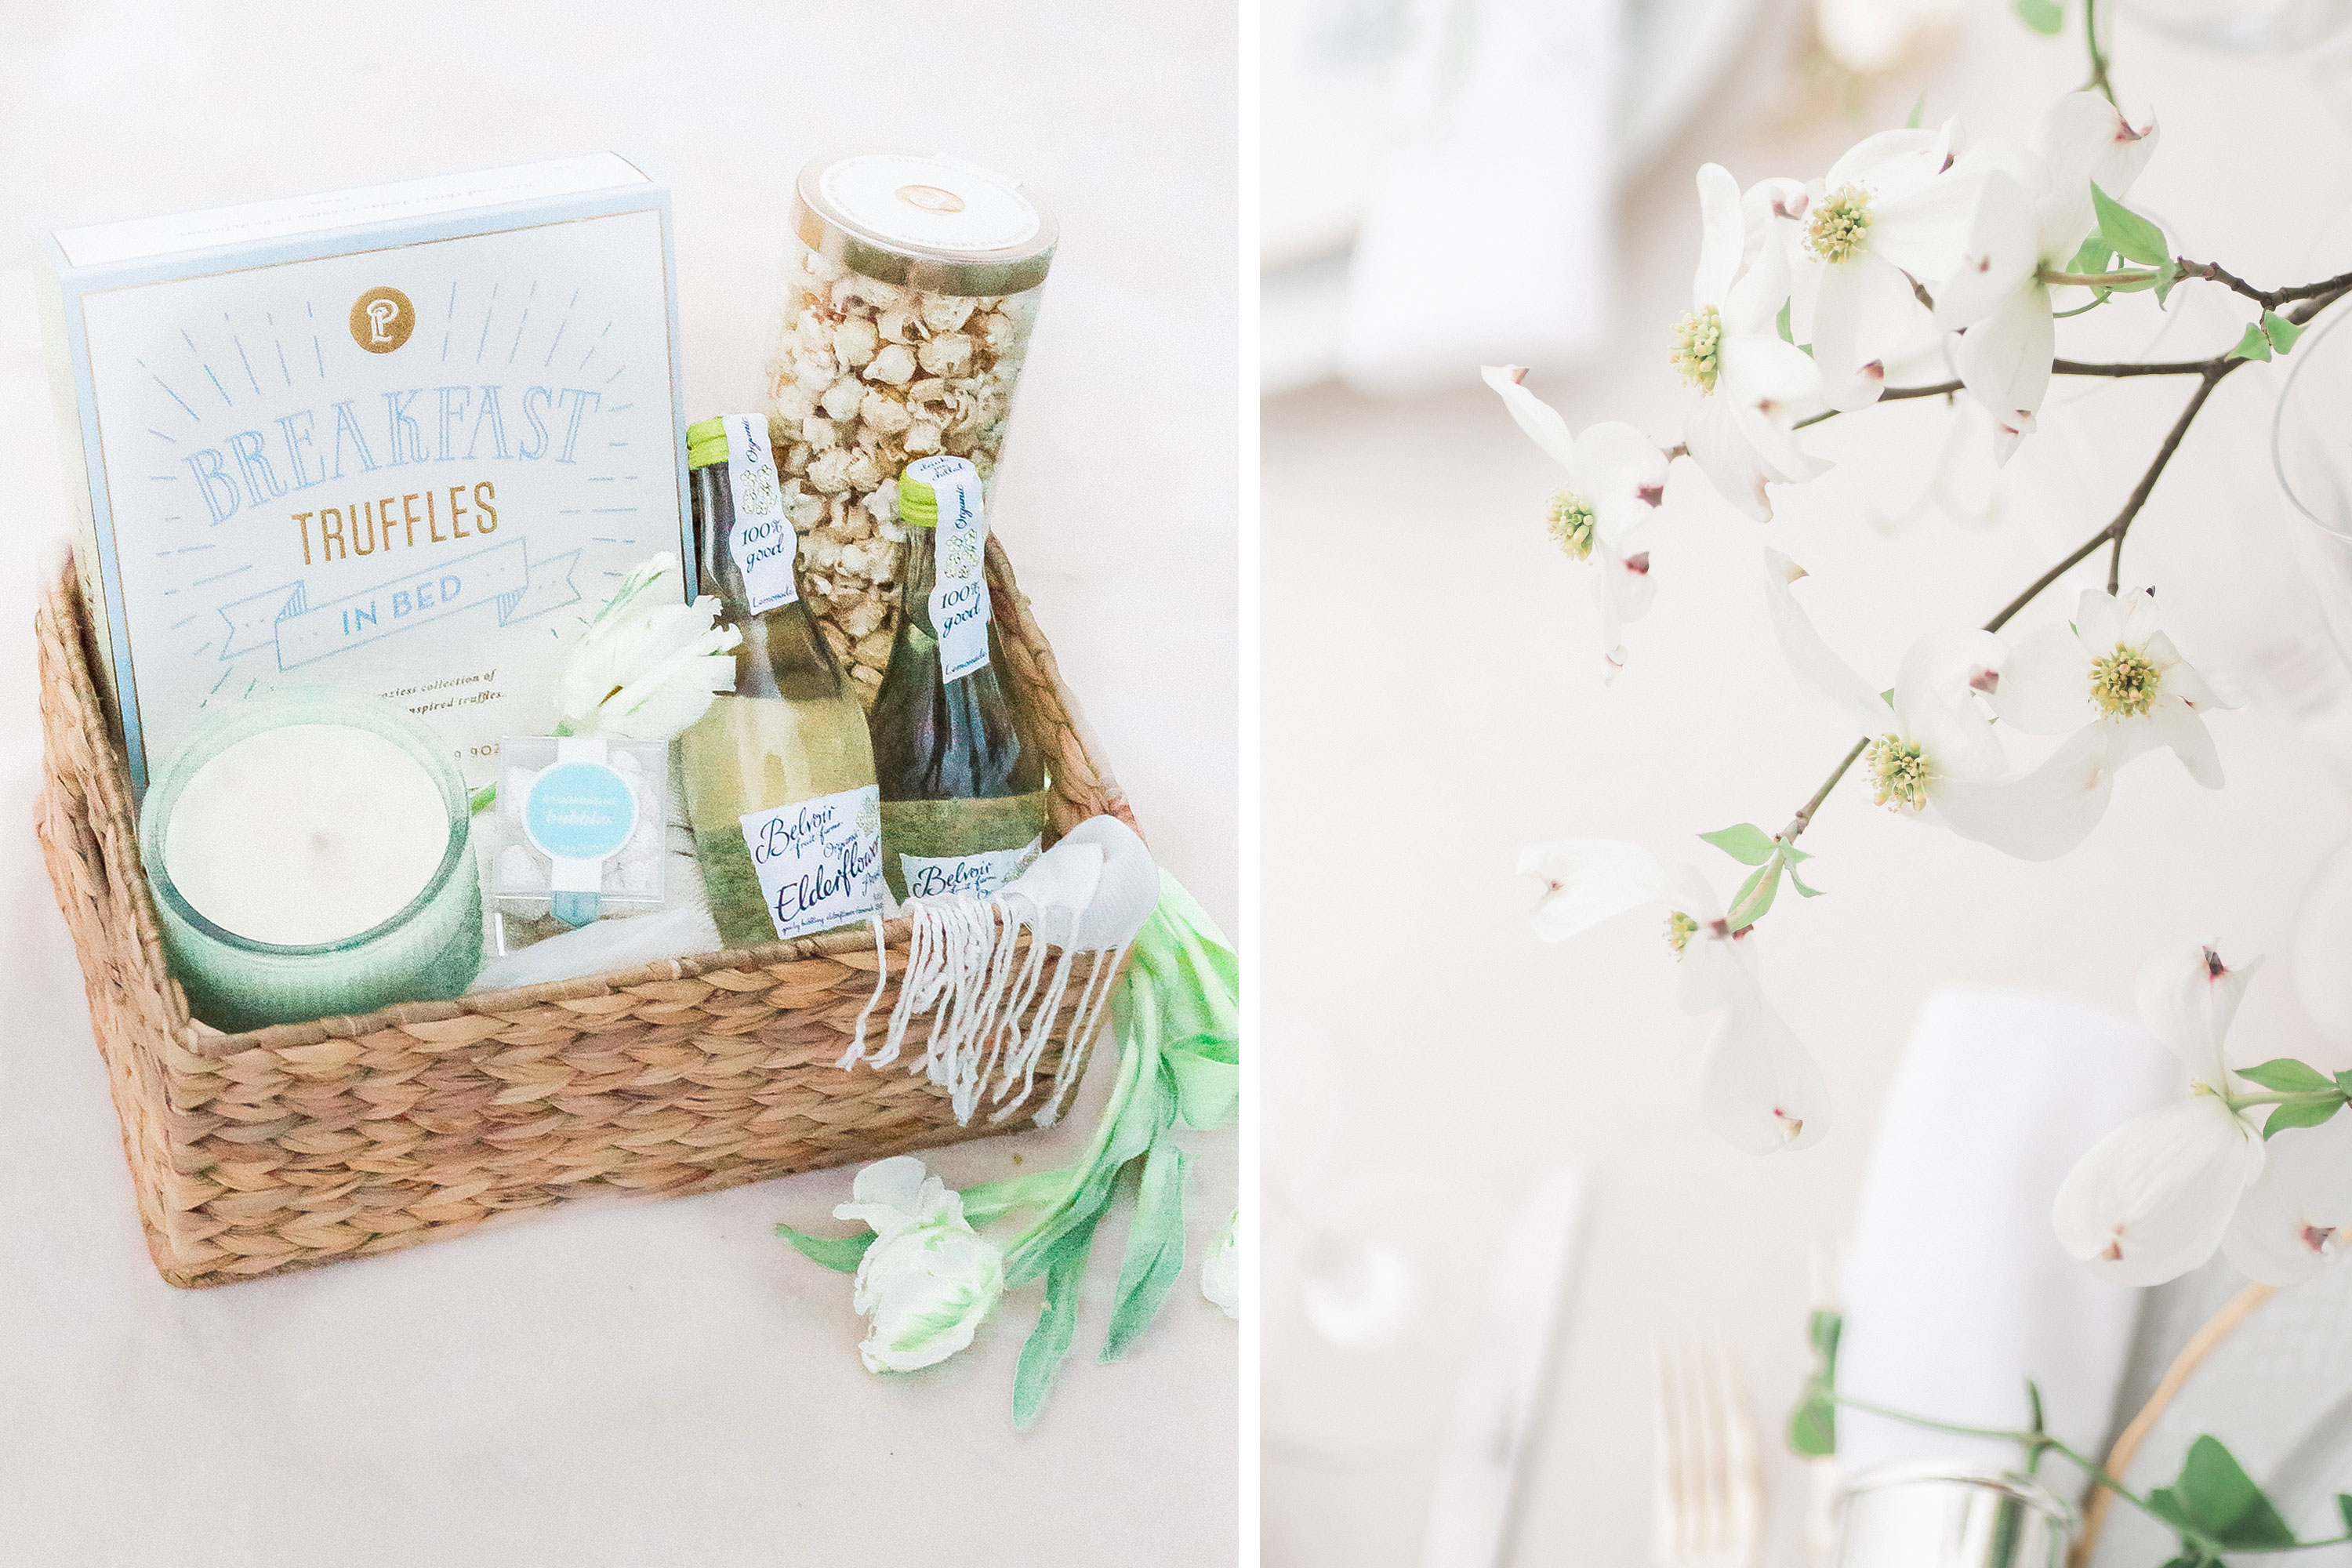 Chesapeake-Bay-Eastern-Shore-Hyatt-Chesapeake-Bay-Maryland-Wedding-Photographer-GiftBasket